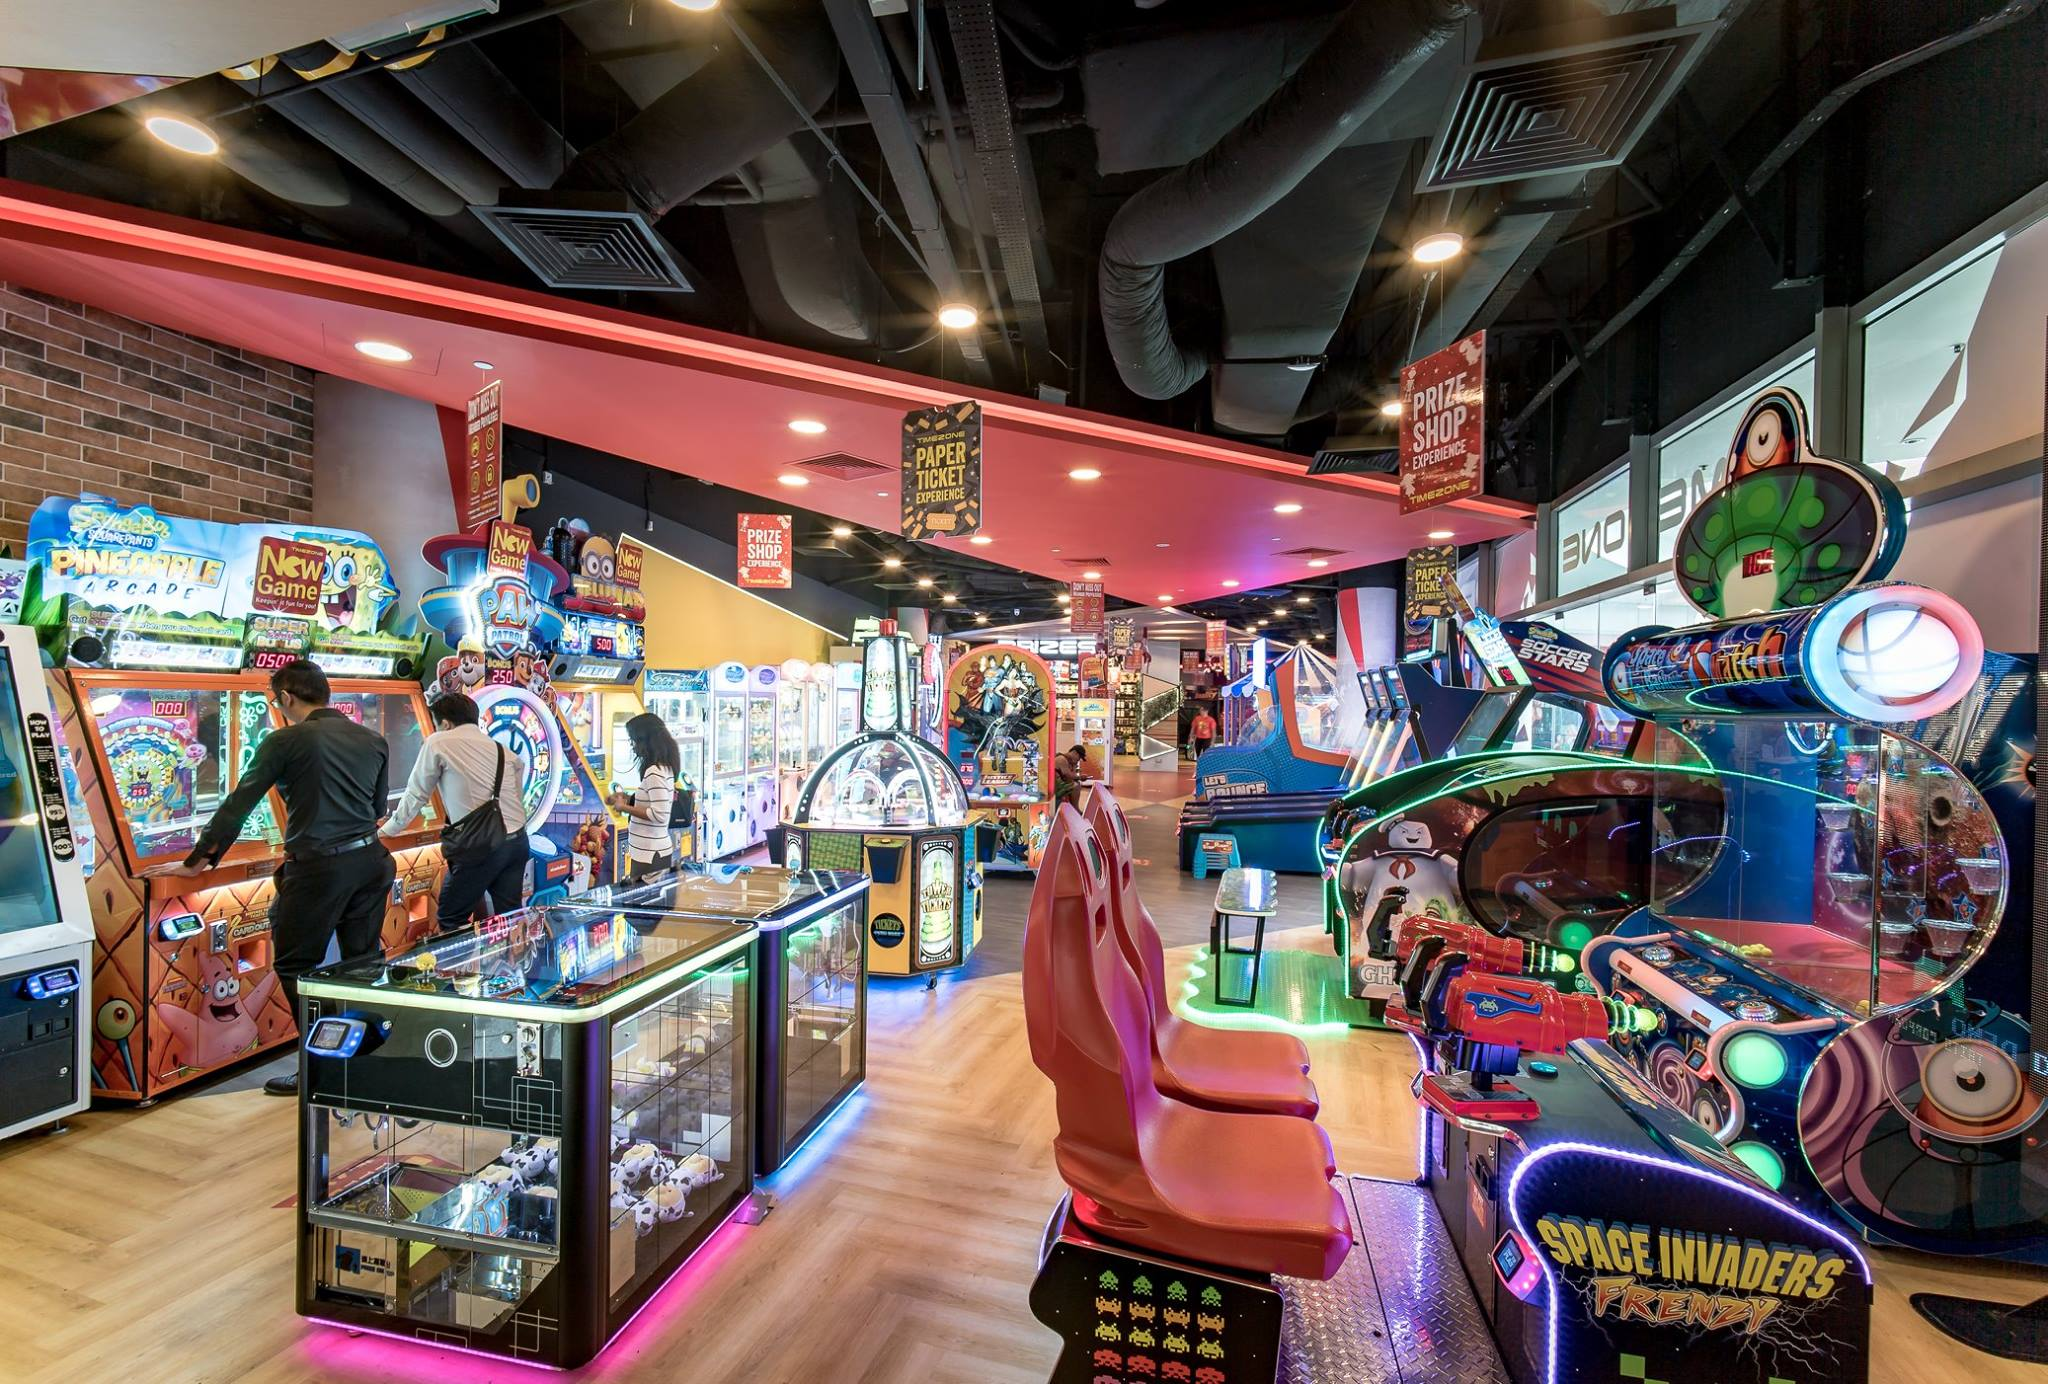 10 Arcades In Singapore You Should Visit For A Dose Of Nostalgia